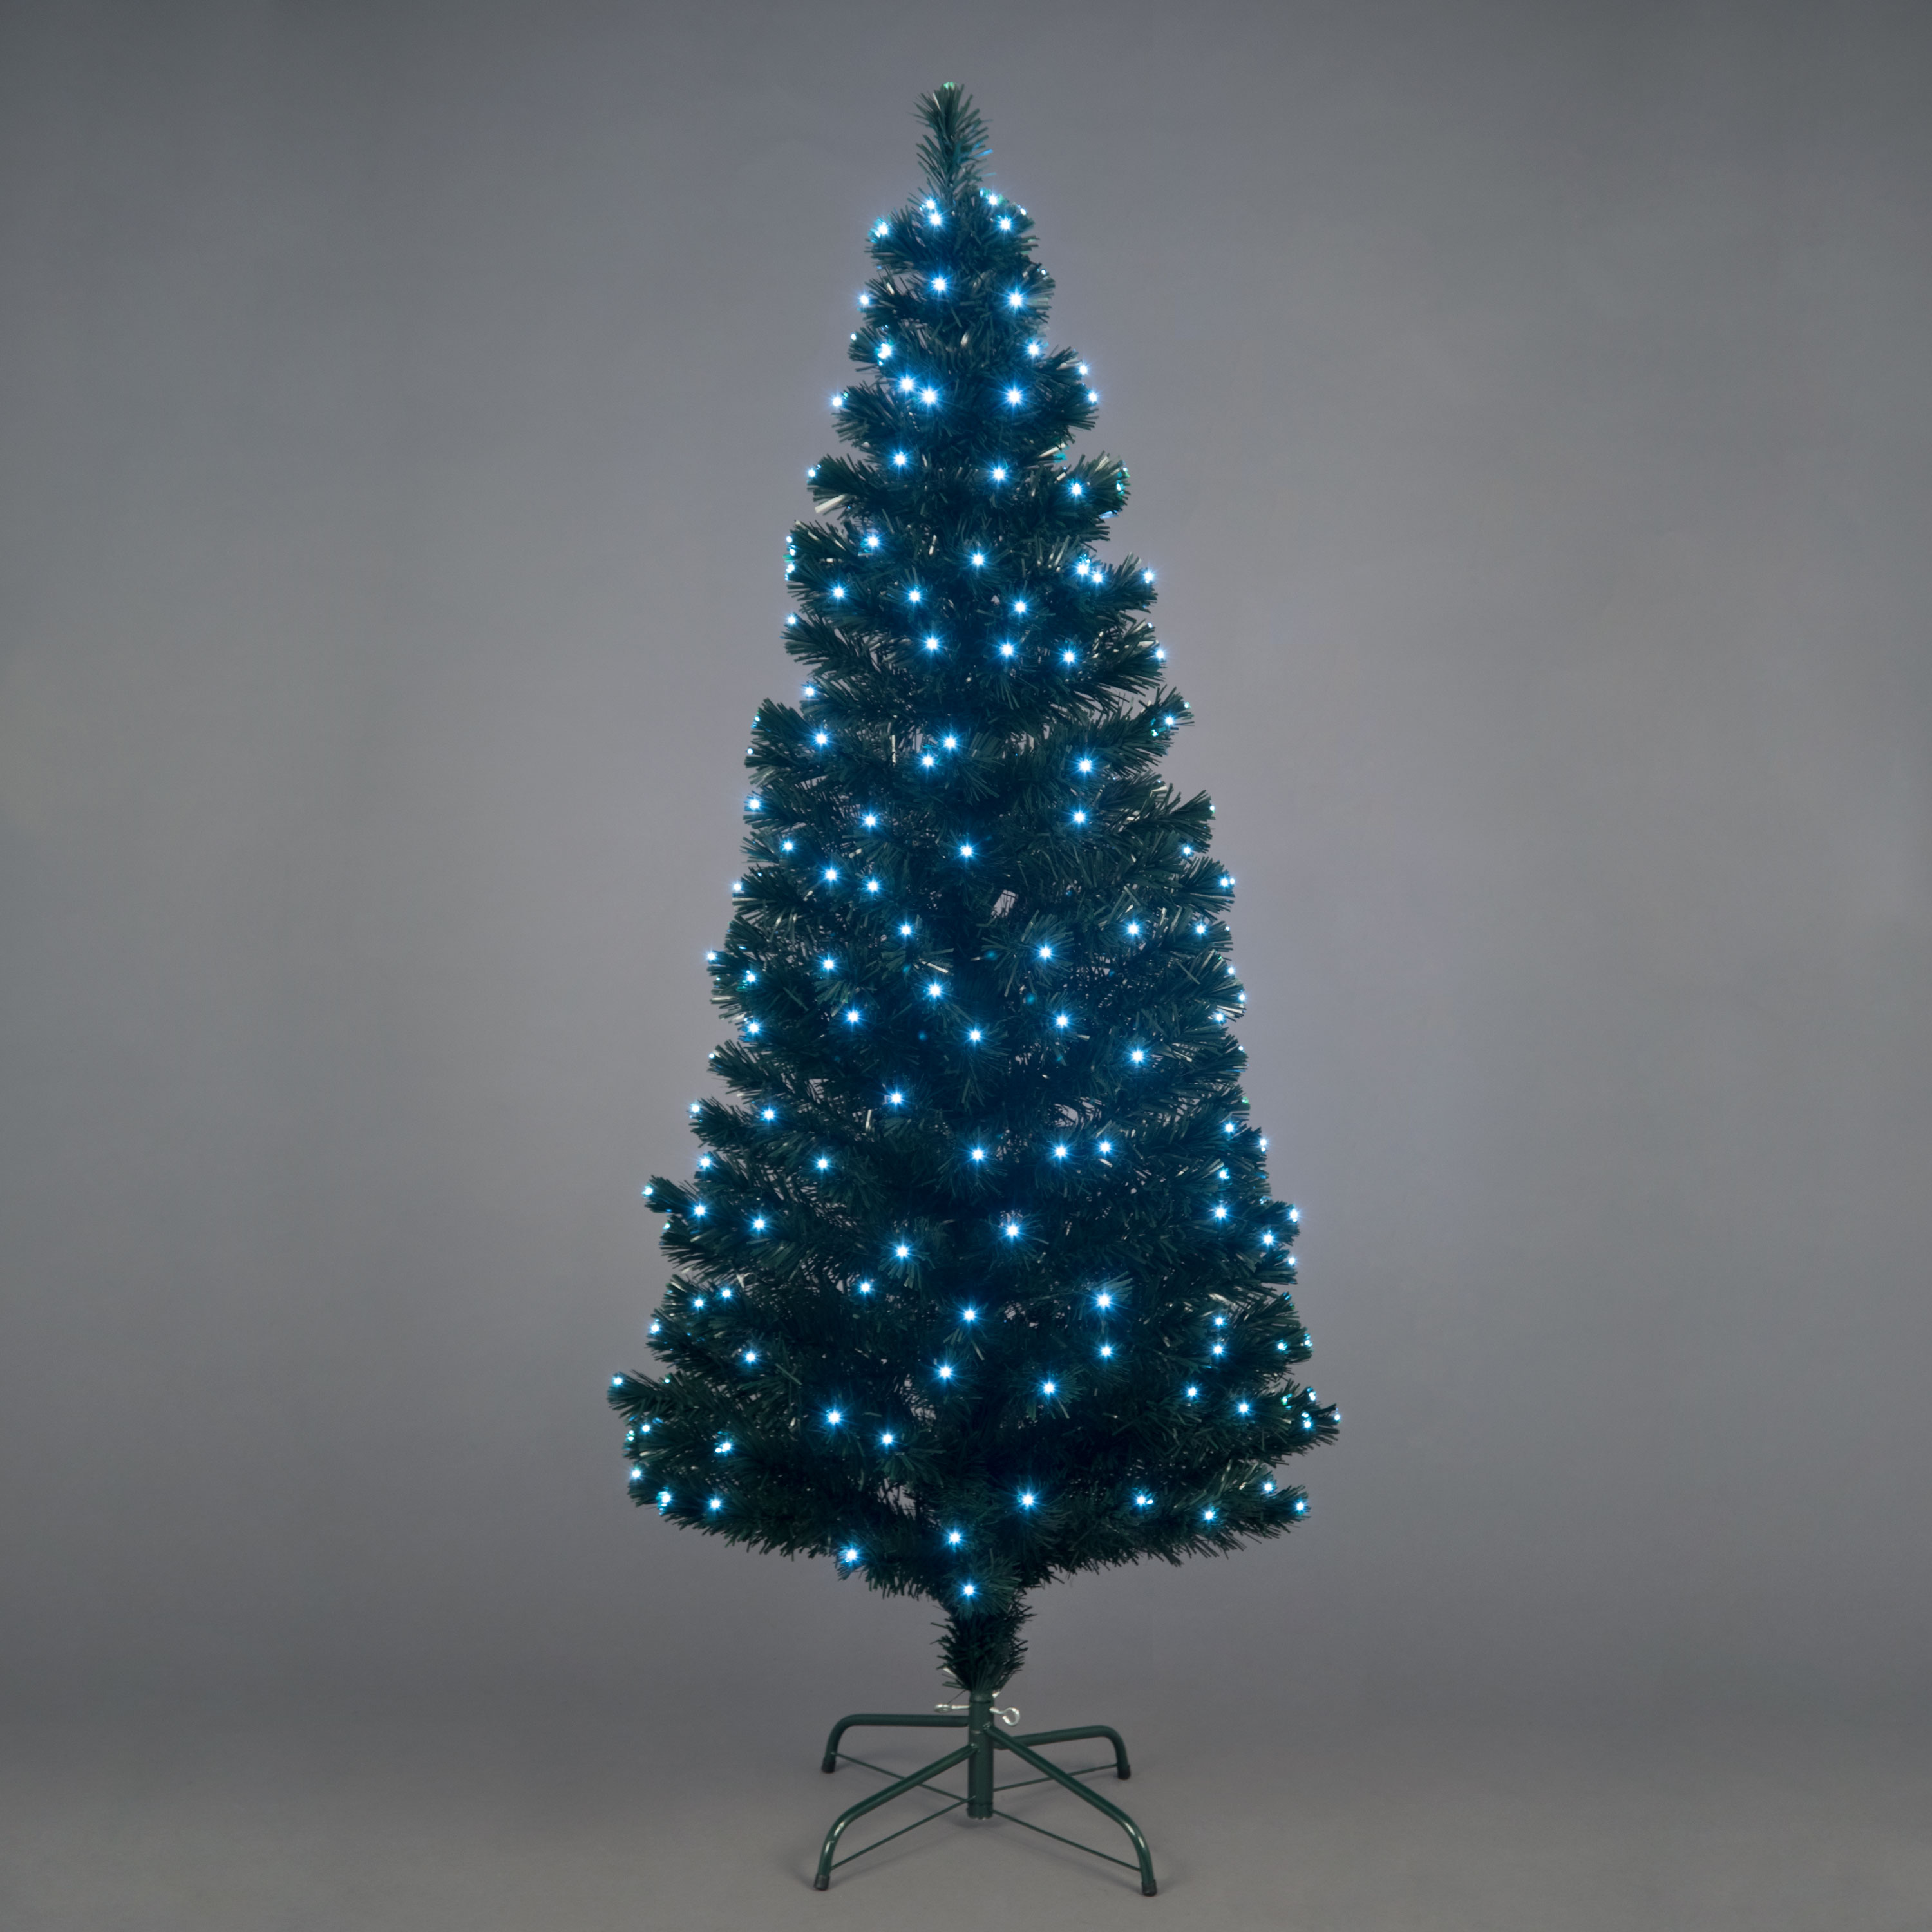 Christmas Trees and Lights 7ft Snowbright Multifunction Ice White LED Tree